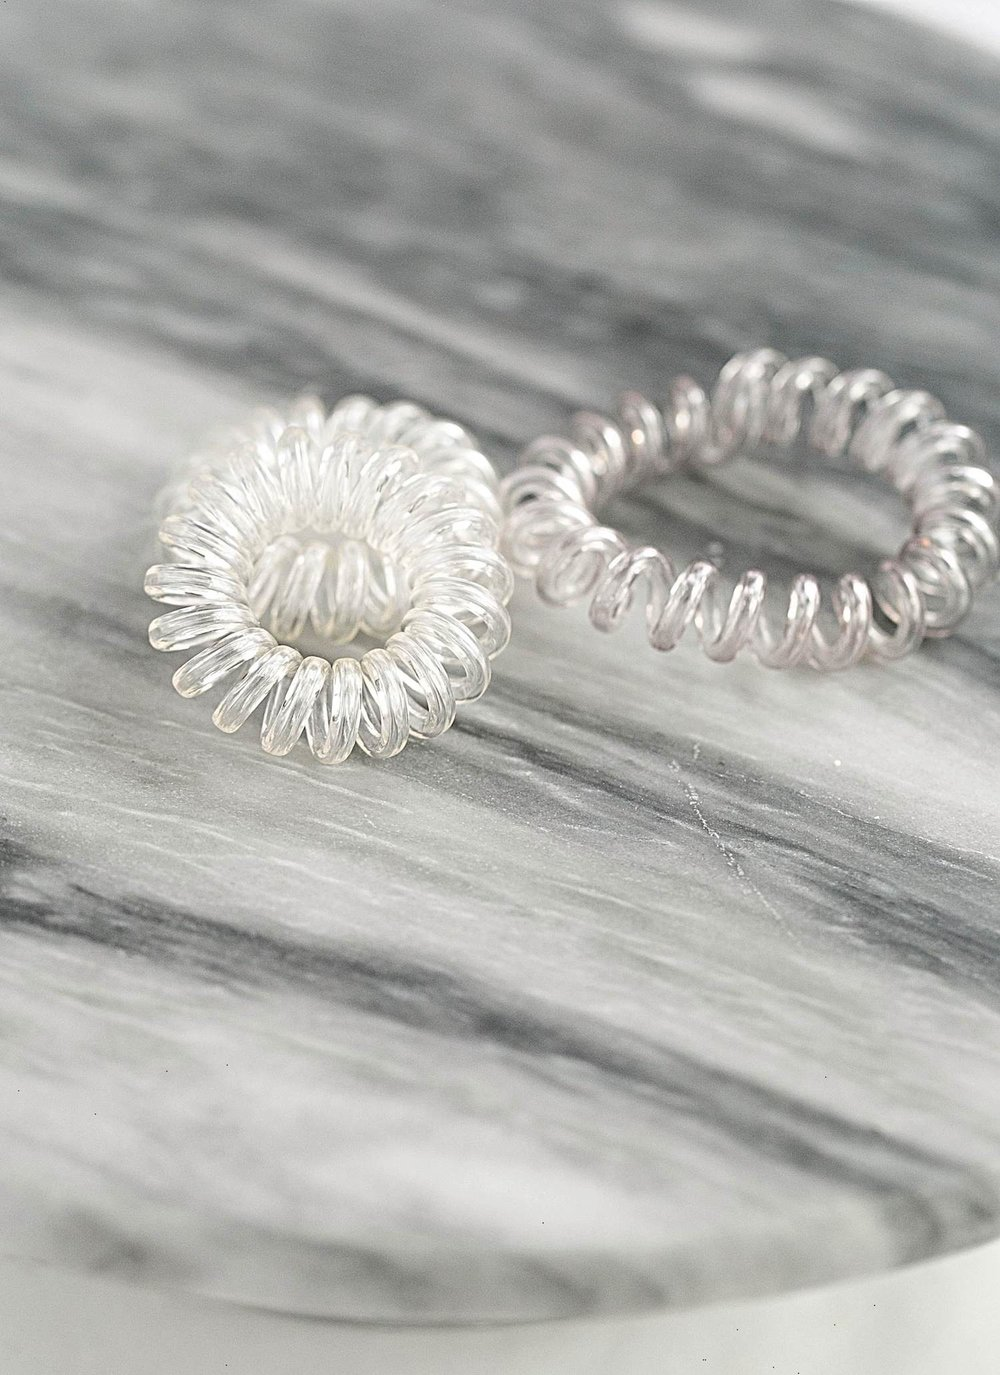 New Favorite Beauty Buys- Coil Hair ties | TrufflesandTrends.com